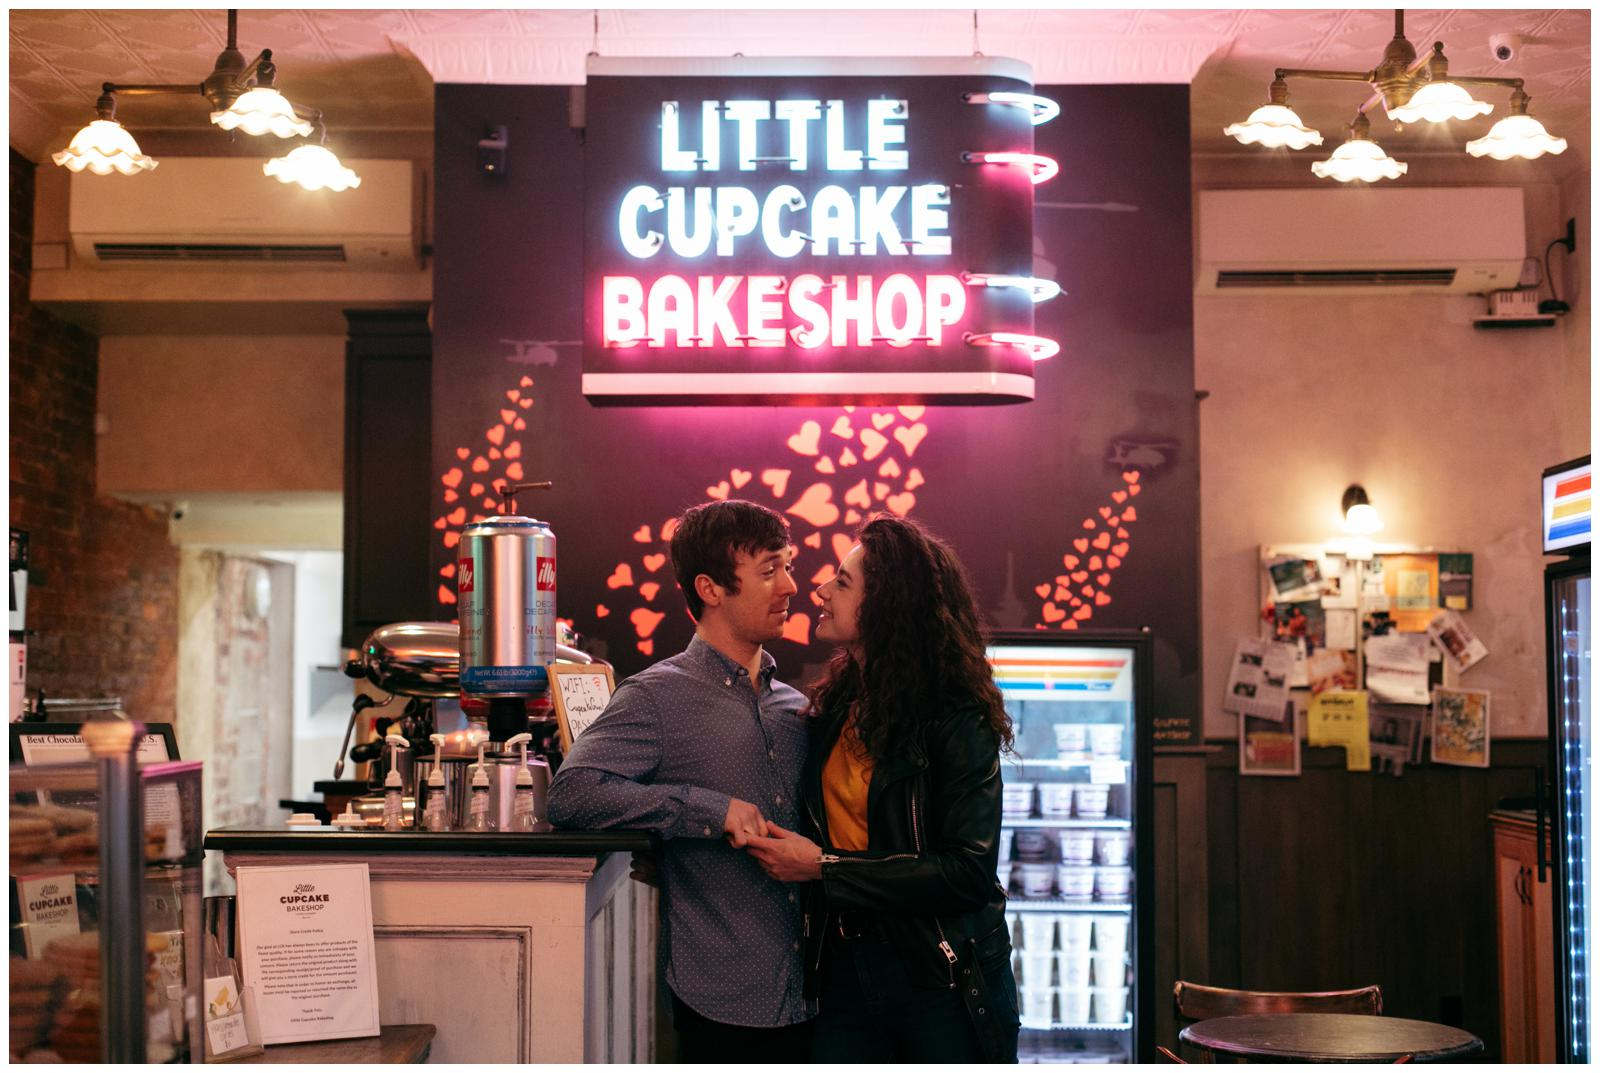 Brooklyn engagement photo ideas